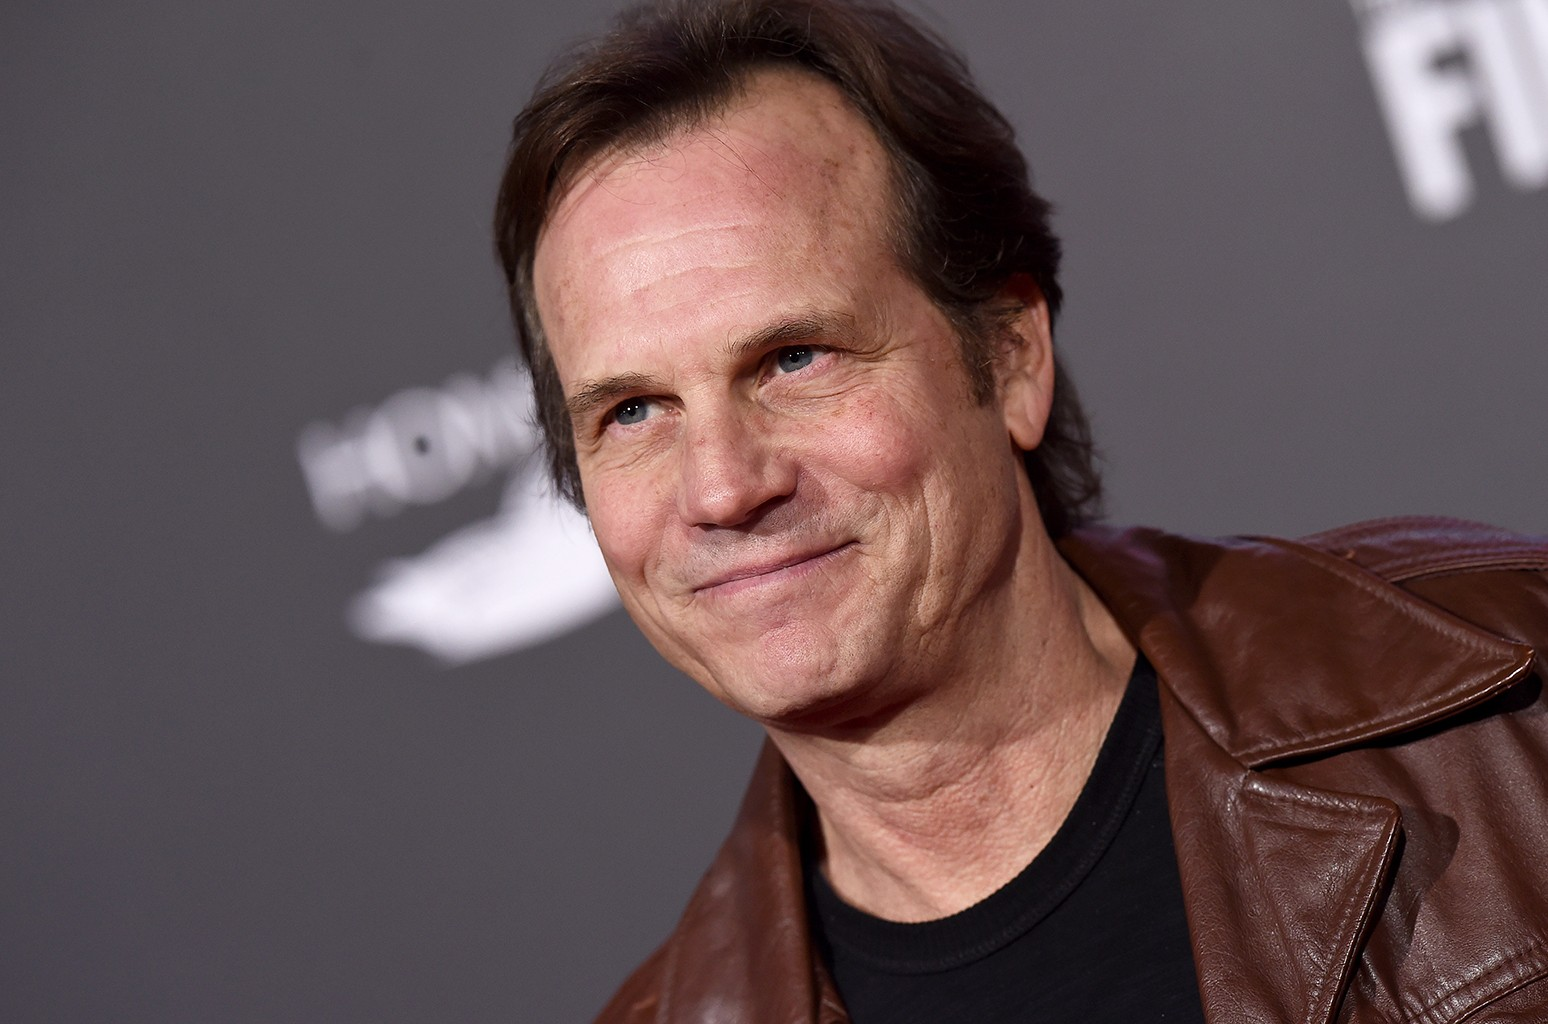 Bill Paxton at TCL Chinese Theatre on Jan. 25, 2016 in Hollywood, Calif.